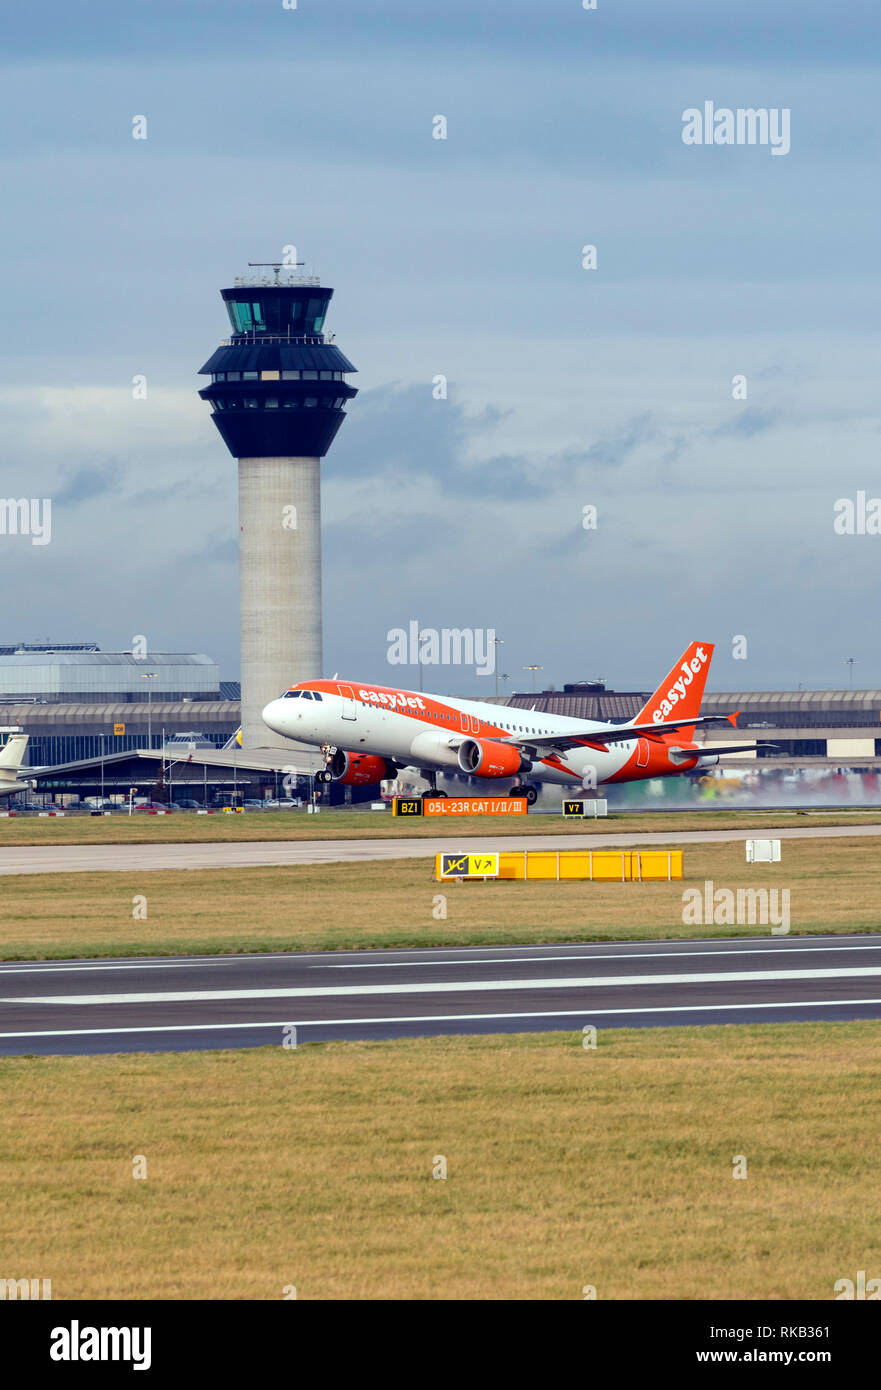 Easyjet Airbus A320-214, G-EZTZ at Manchester Airport during take off - Stock Image